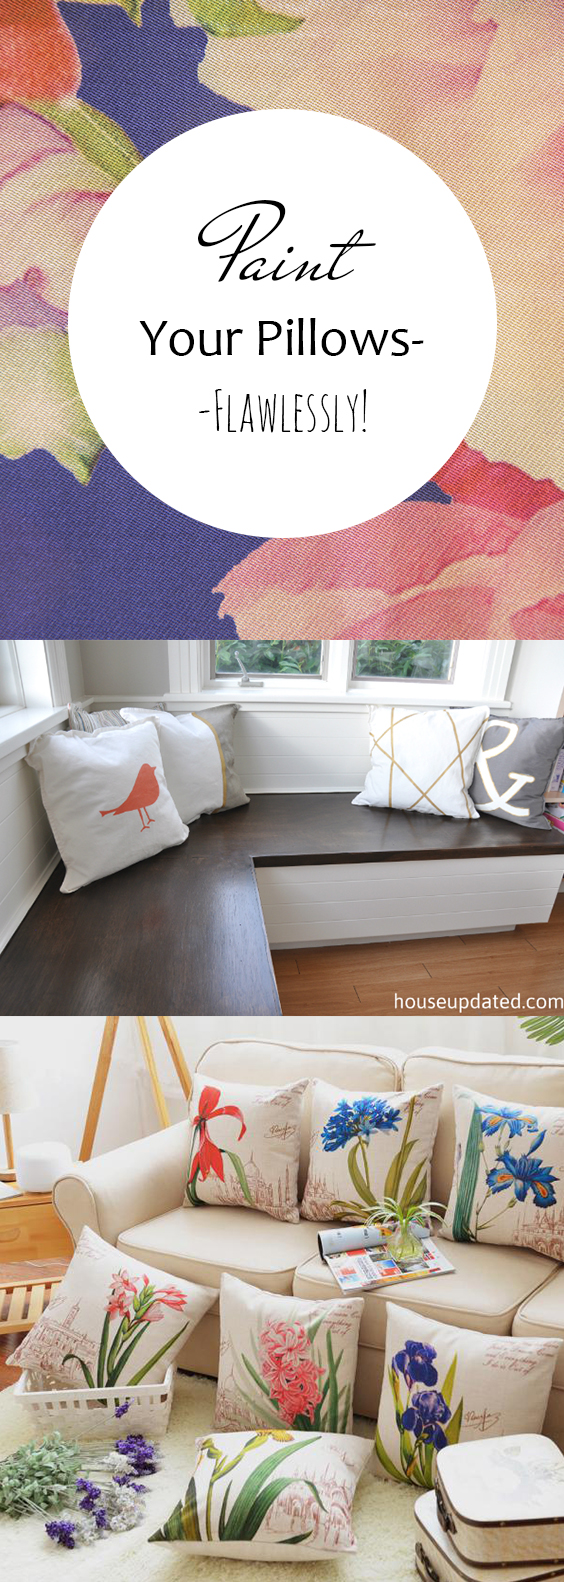 Paint Your Pillows–Flawlessly!| DIY Home, DIY Pillows, DIY Home Pillows, Home Decor, Home Decor Hacks, Pillows for Your Home, DIY Home Decor, Crafts for the Home #DIYHome #HomeDecor #DIYPillows